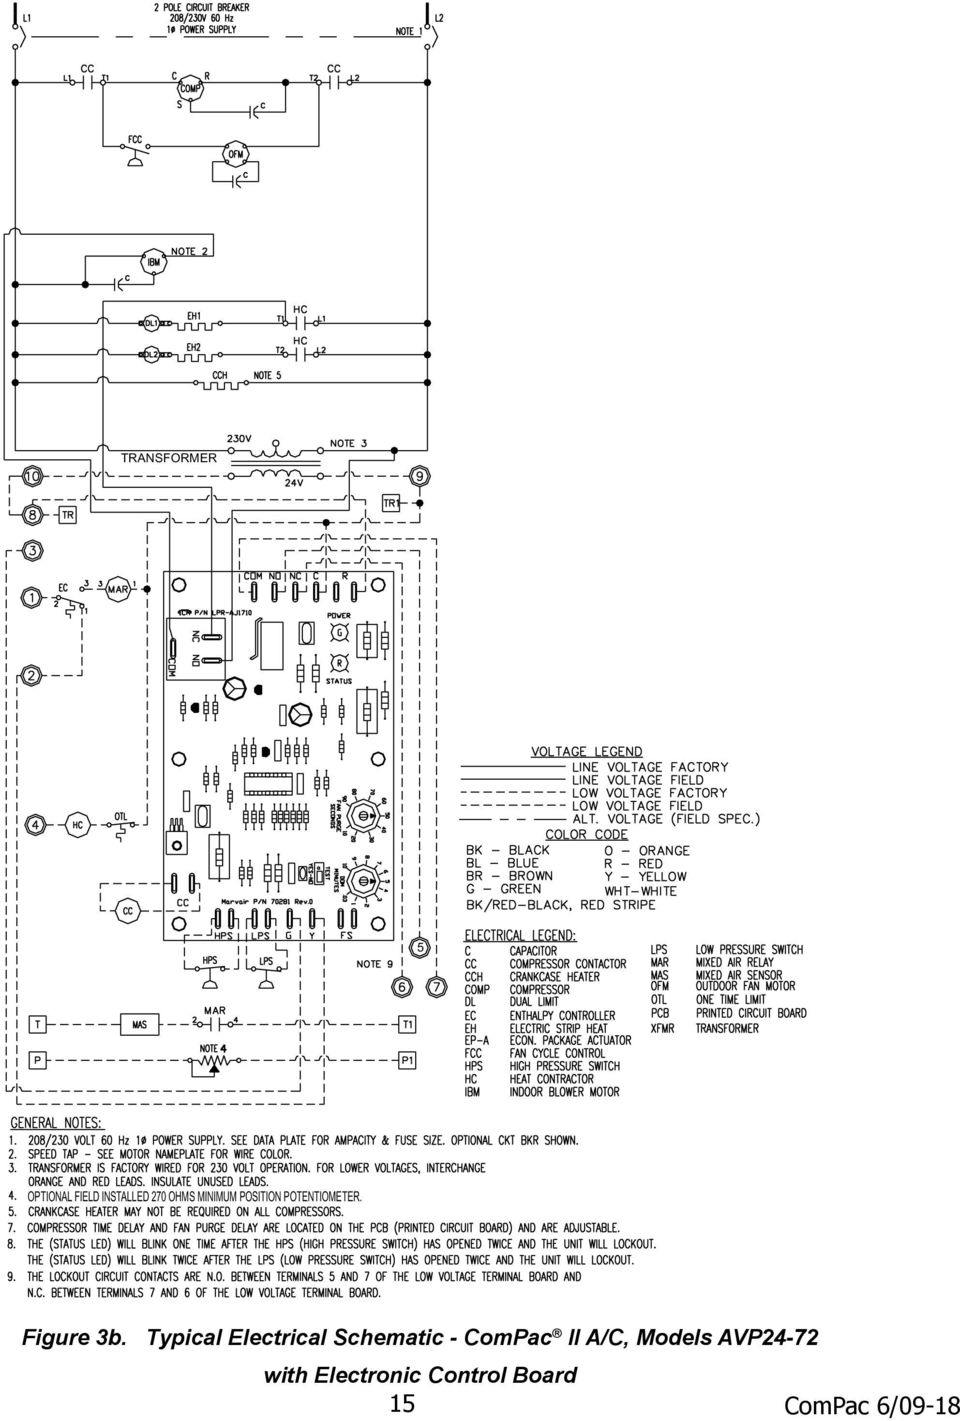 compac i and compac ii air conditioner product manual pdf typical electrical schematic compac ii a c